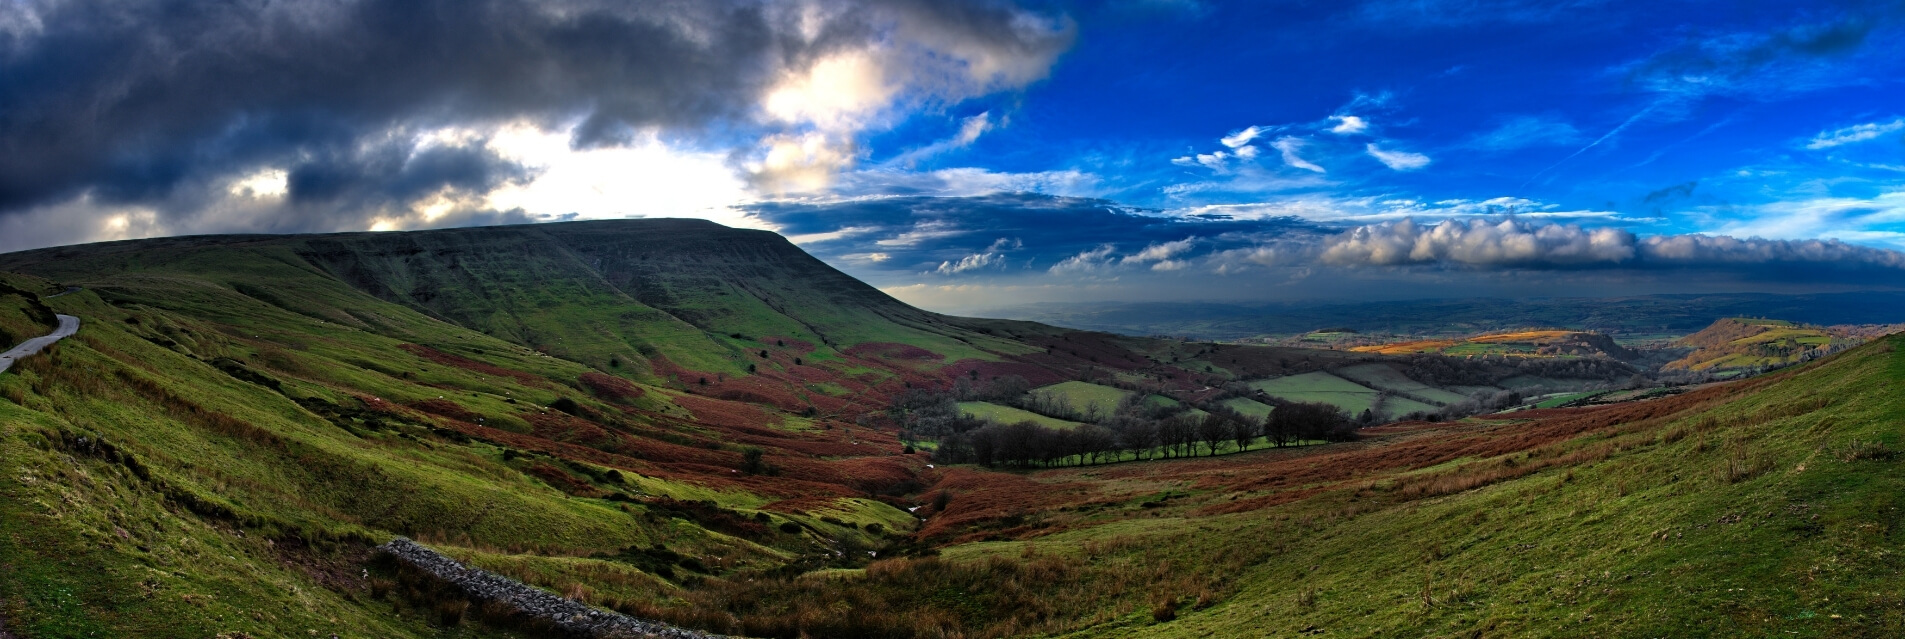 Luxury Cottages in the Brecon Beacons